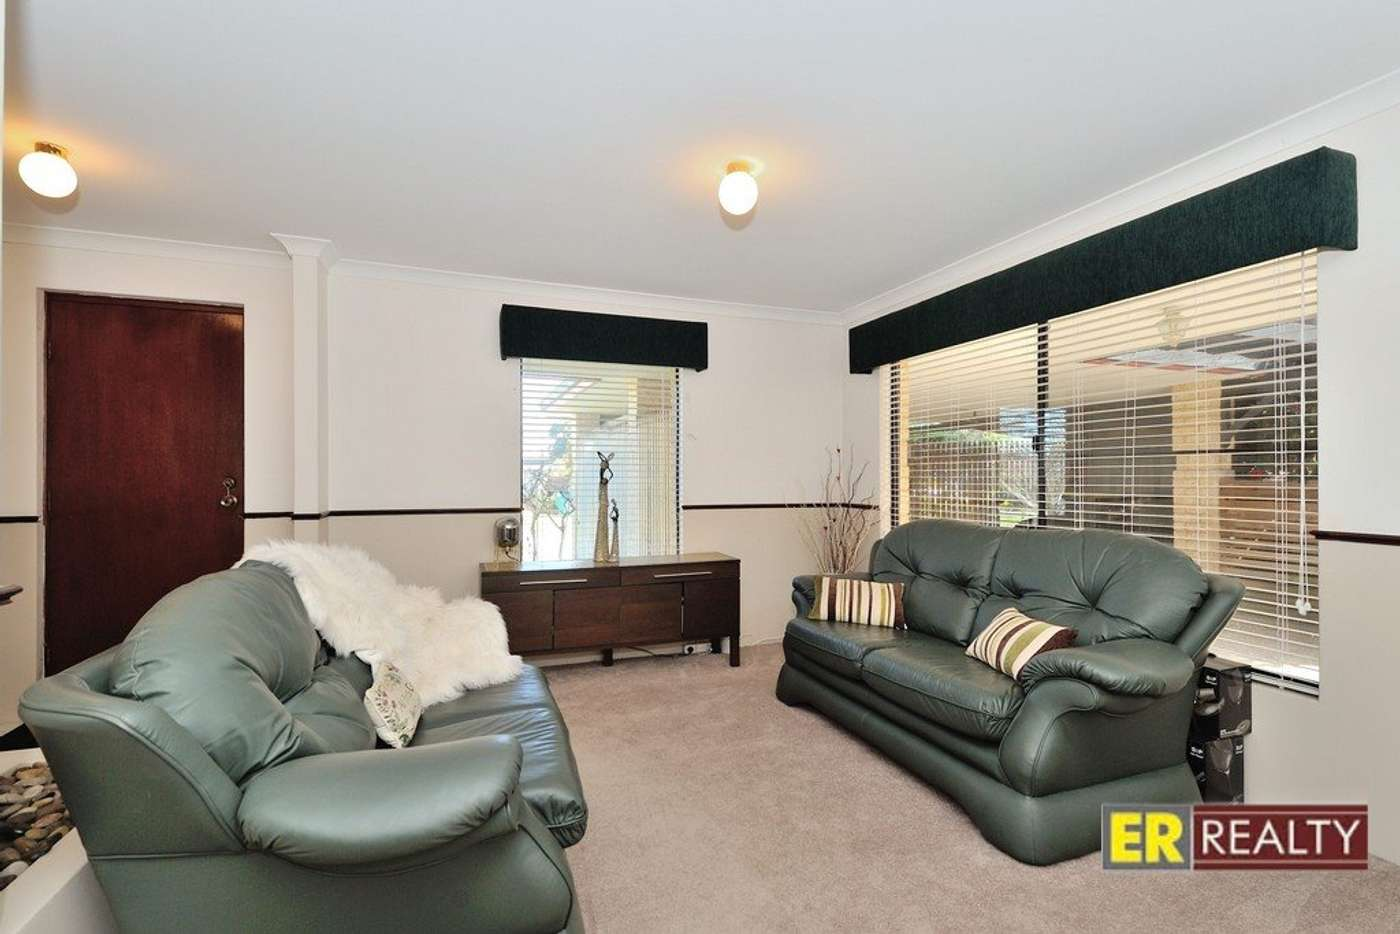 Seventh view of Homely house listing, 6 Rivergum Close, Ellenbrook WA 6069